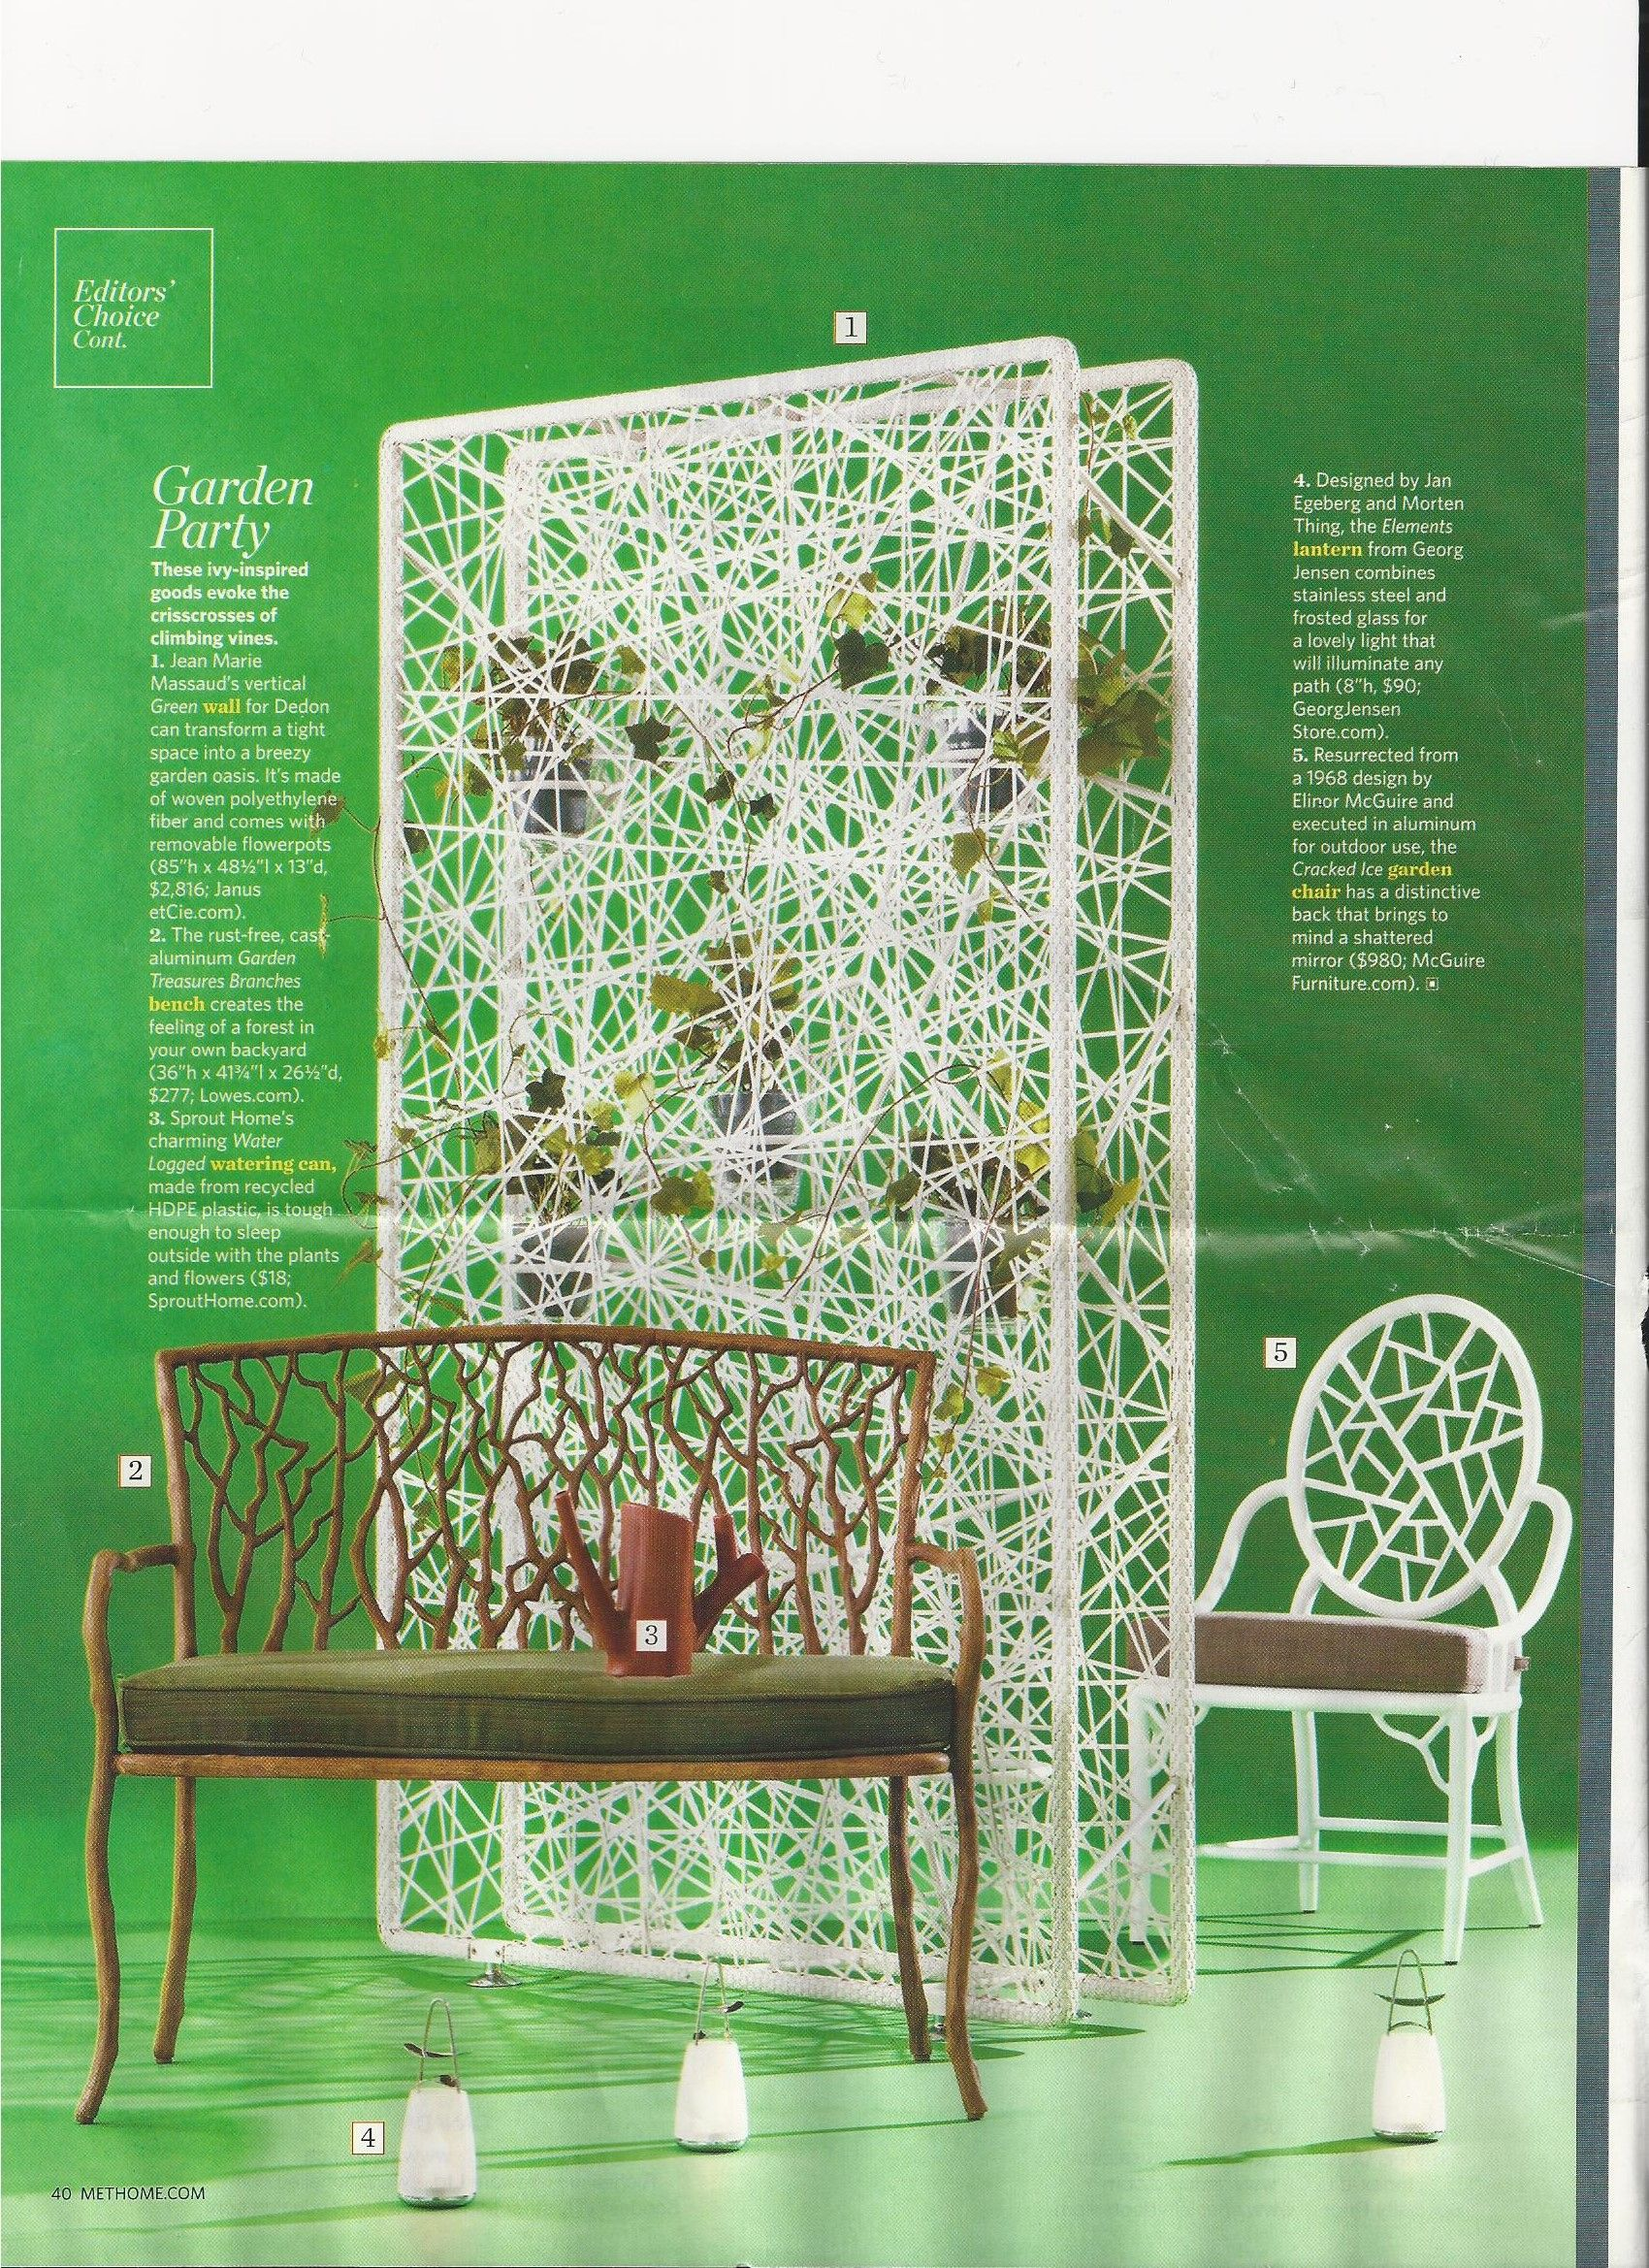 Wicker may be too granny style, look at these for a cool porch!